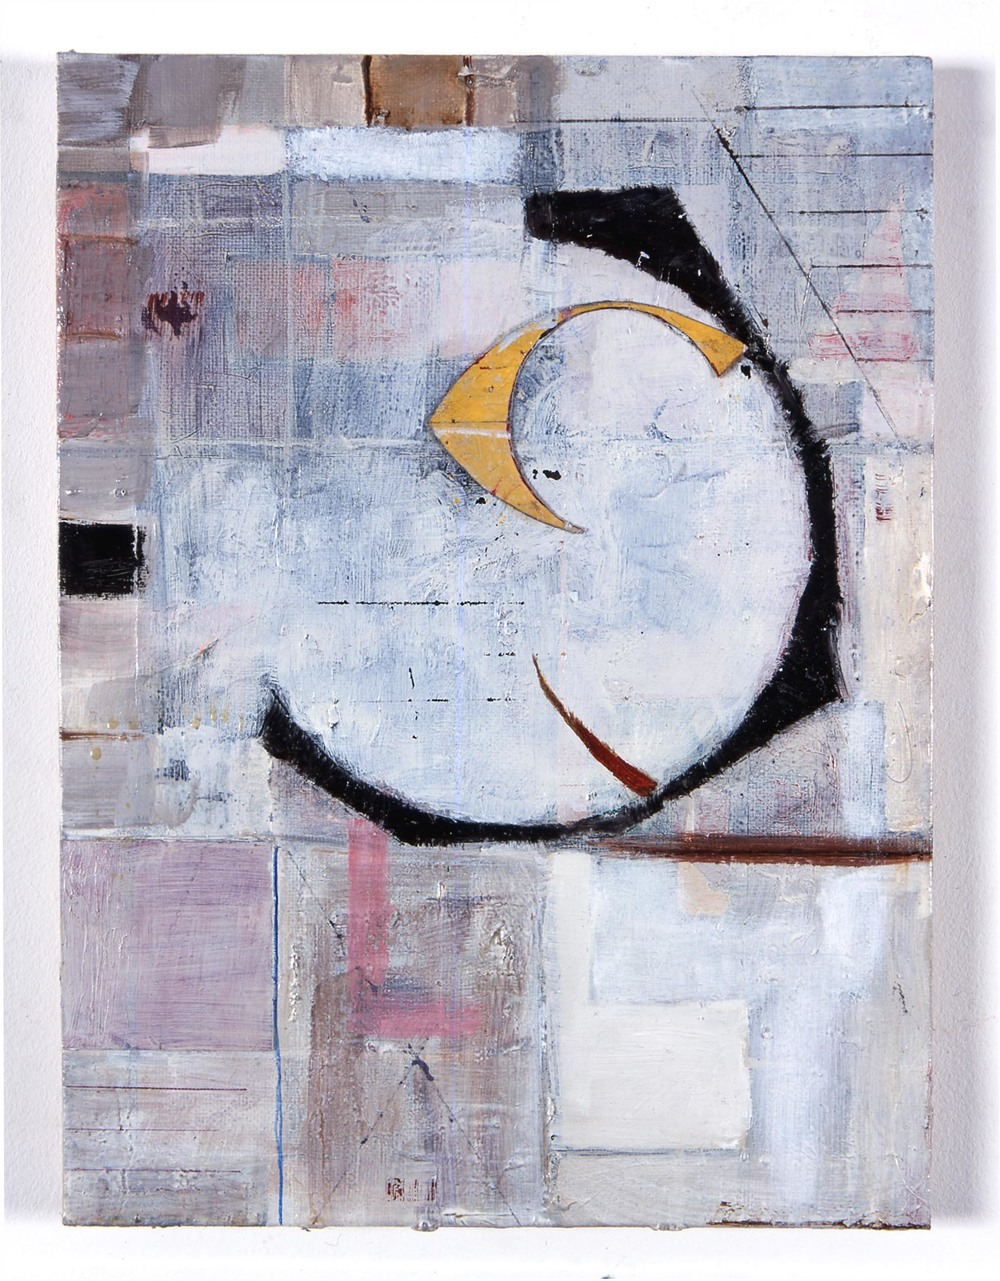 Untitled 2005 oil and paper on board 30.5x22.5cm